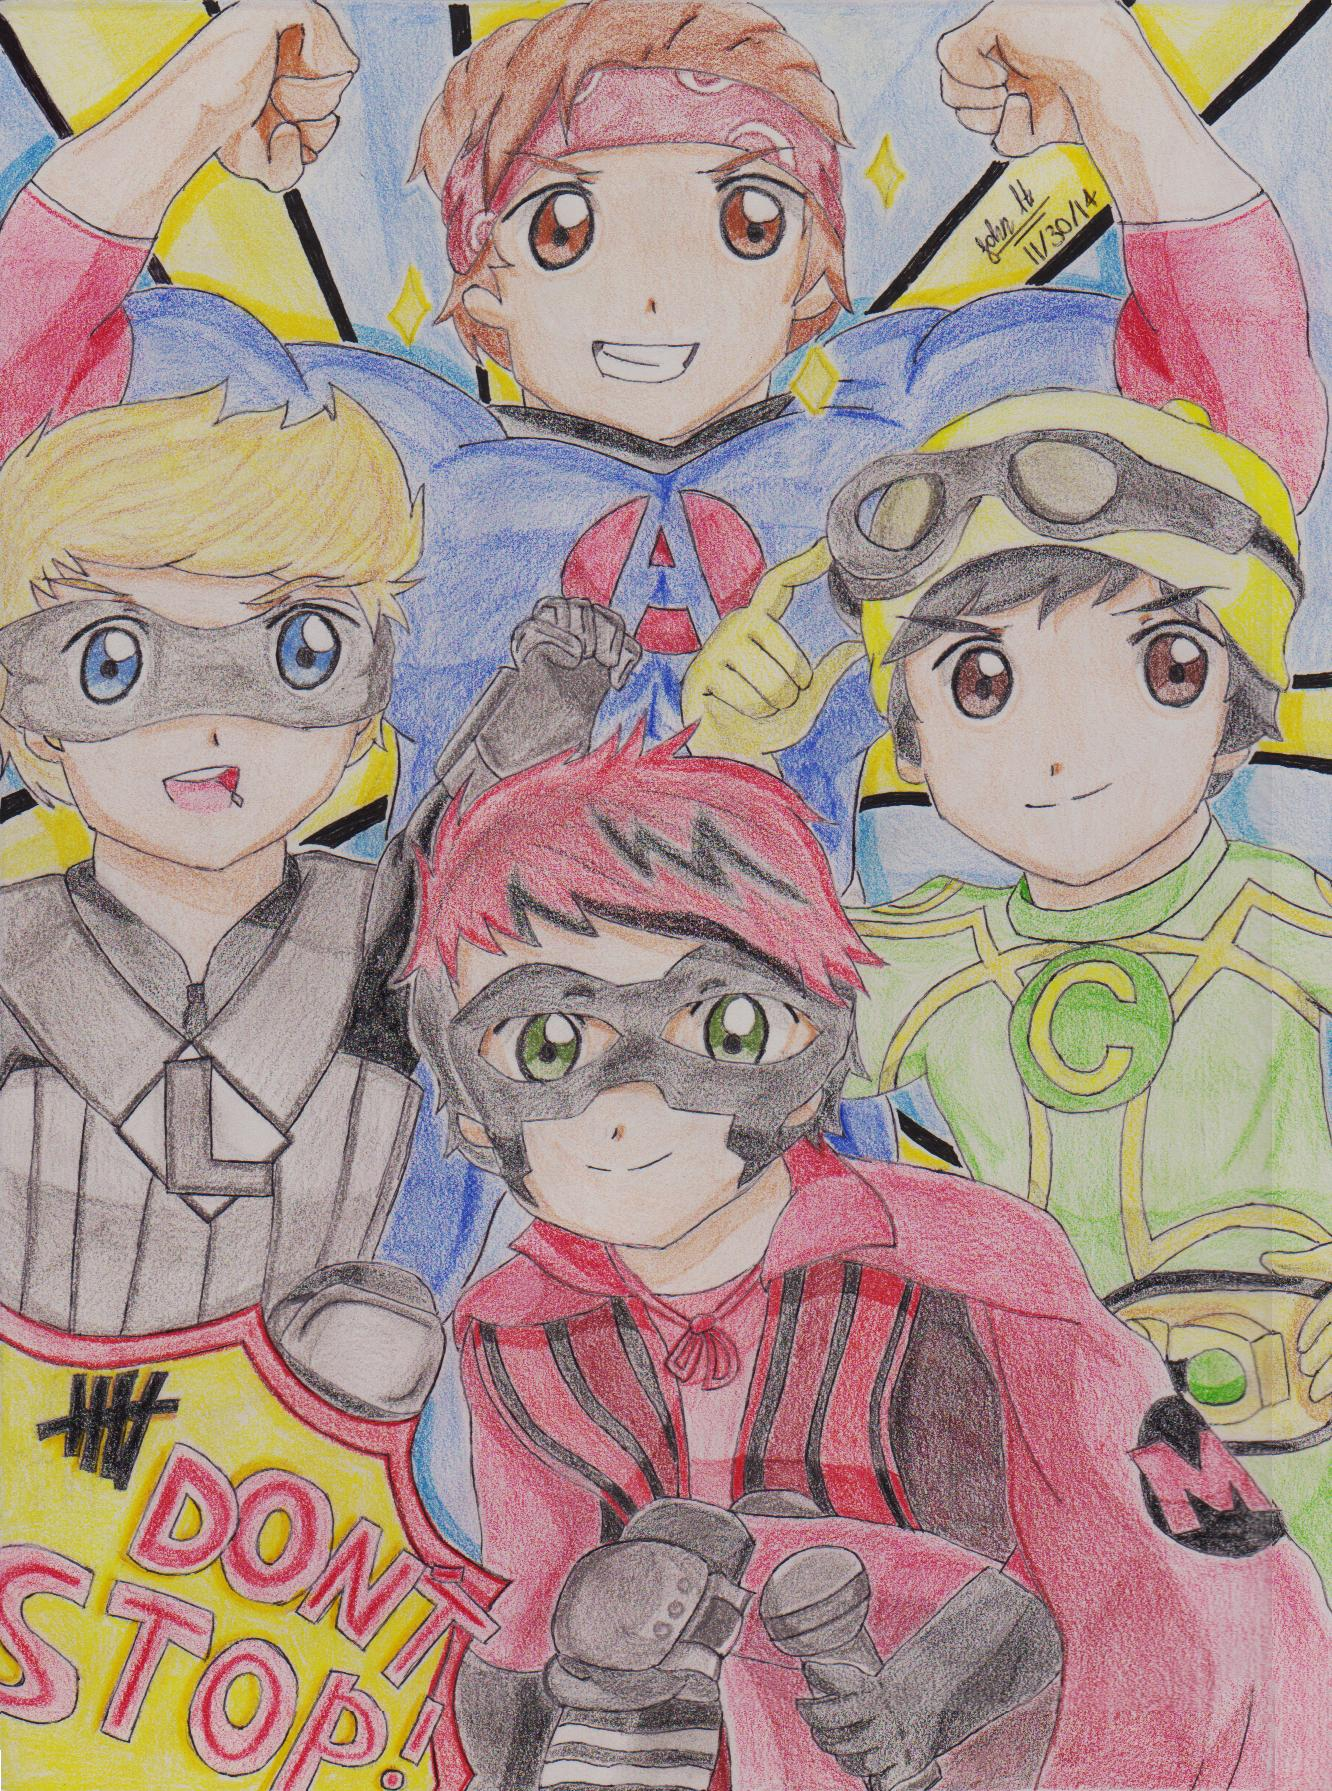 5SOS Don't Stop by OneDirectionFanJohn on DeviantArt